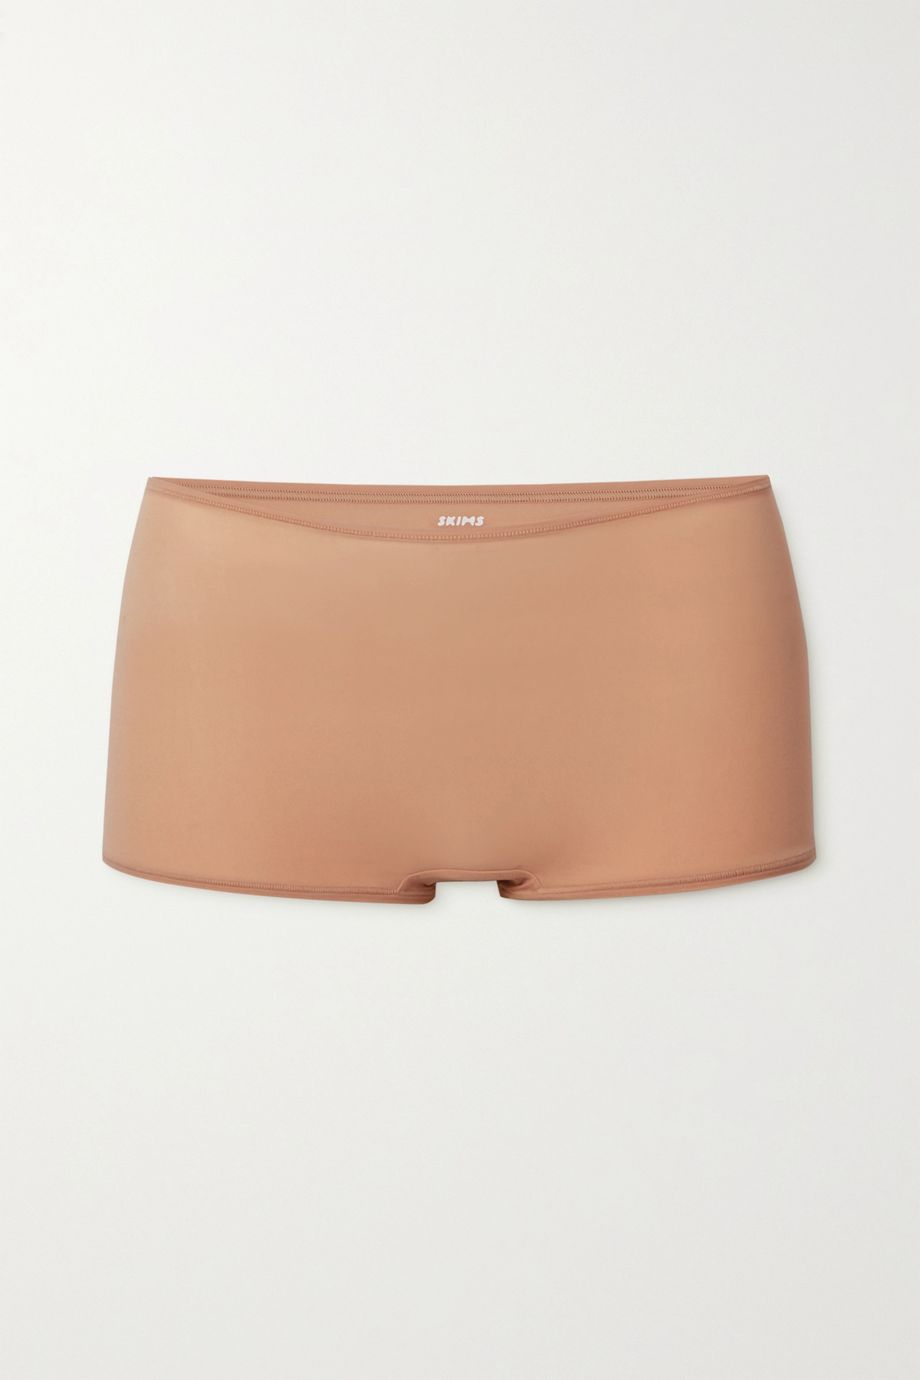 SKIMS Fits Everybody boy shorts - Sienna